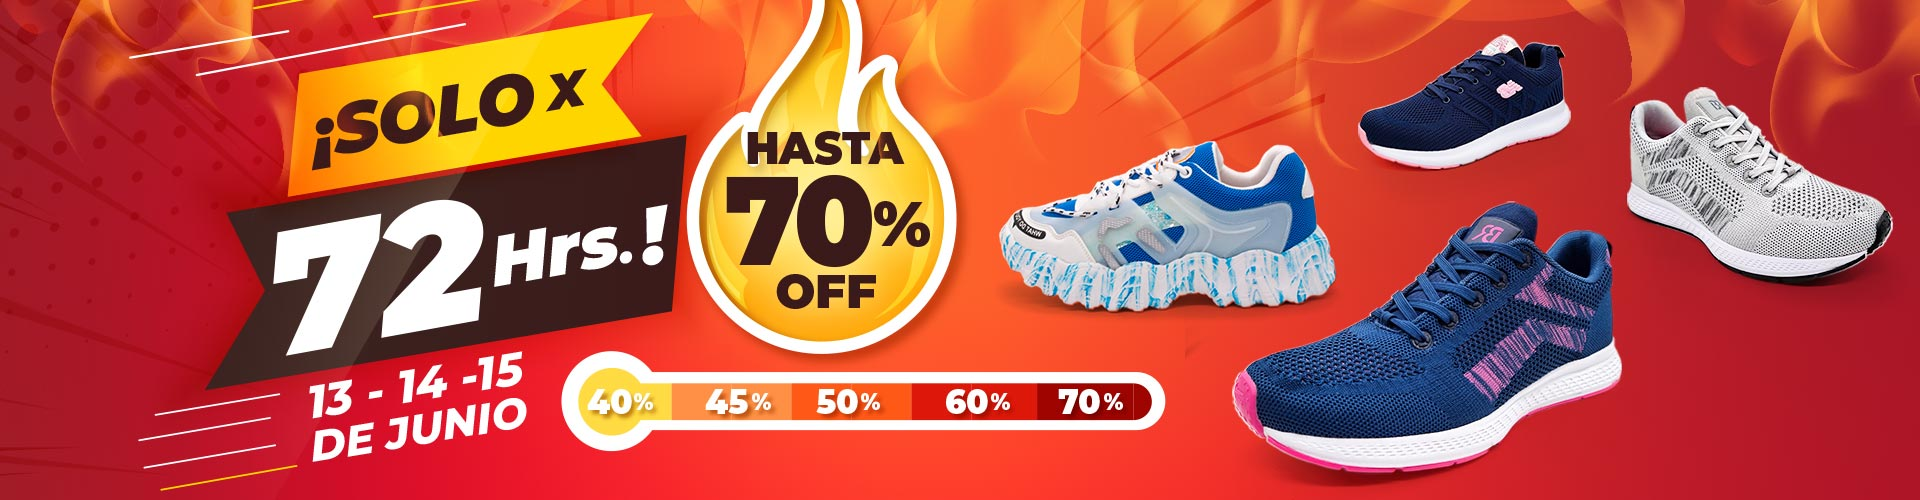 Todo Outlet 70% Off